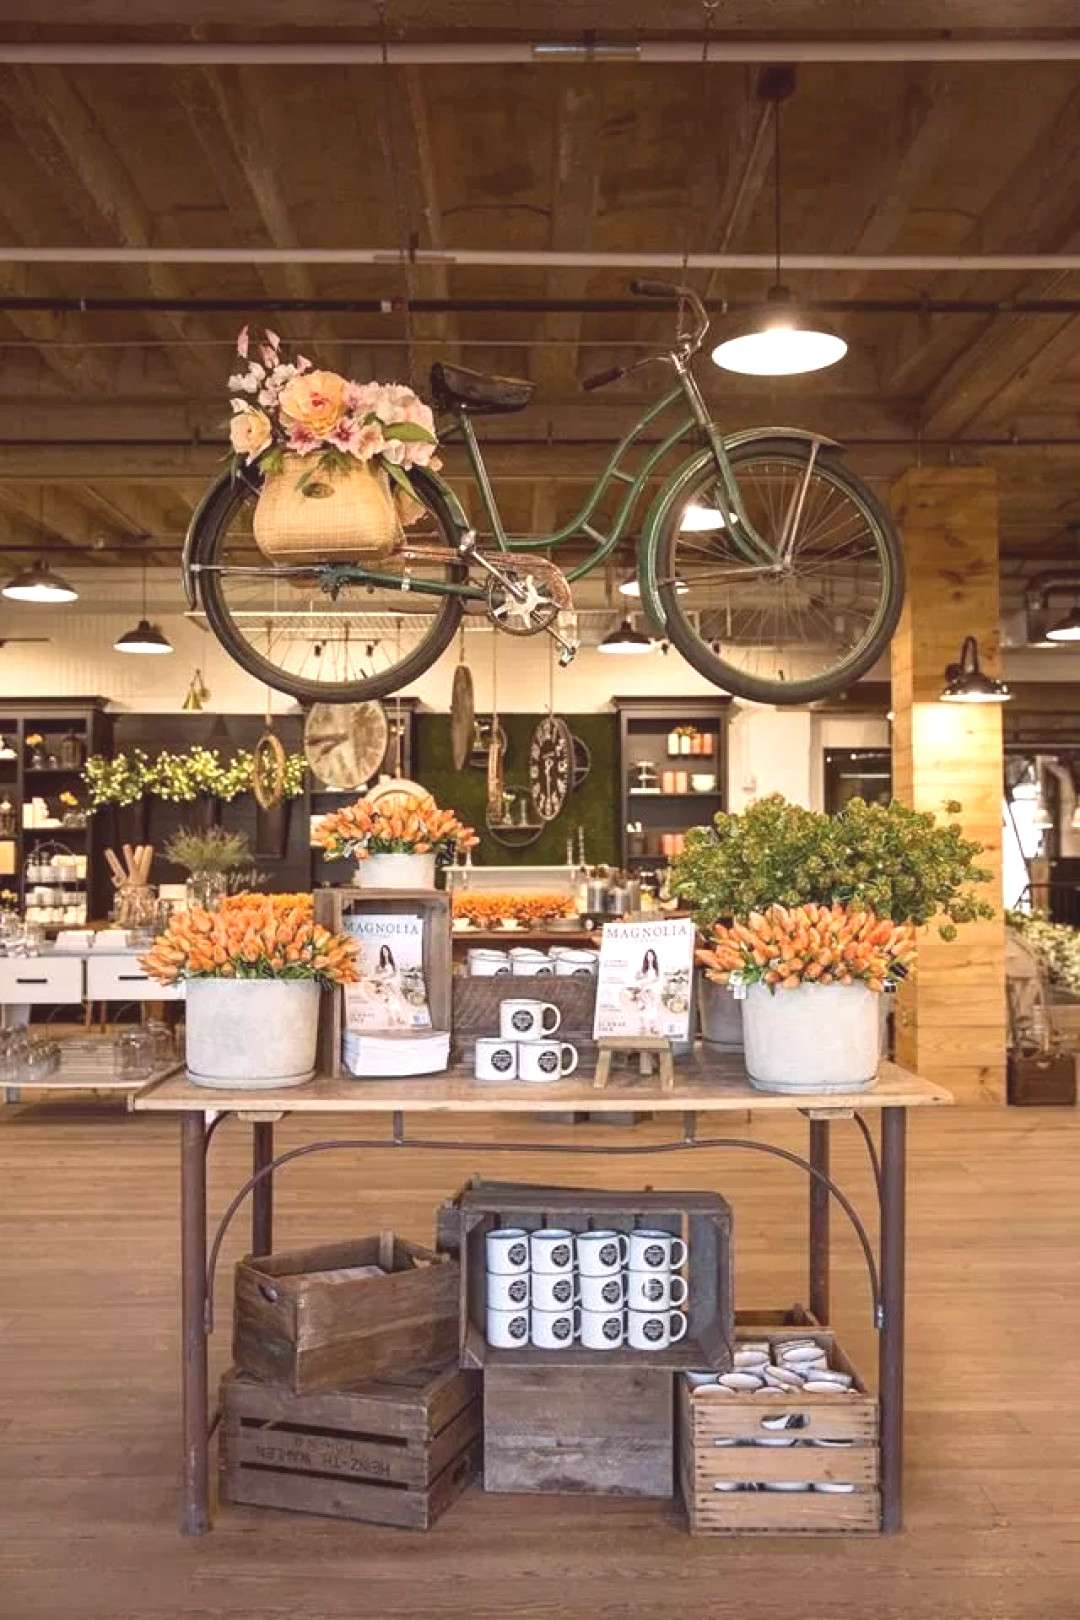 18 DIY Retail Display Ideas - How To Make Your Shop Look Great!